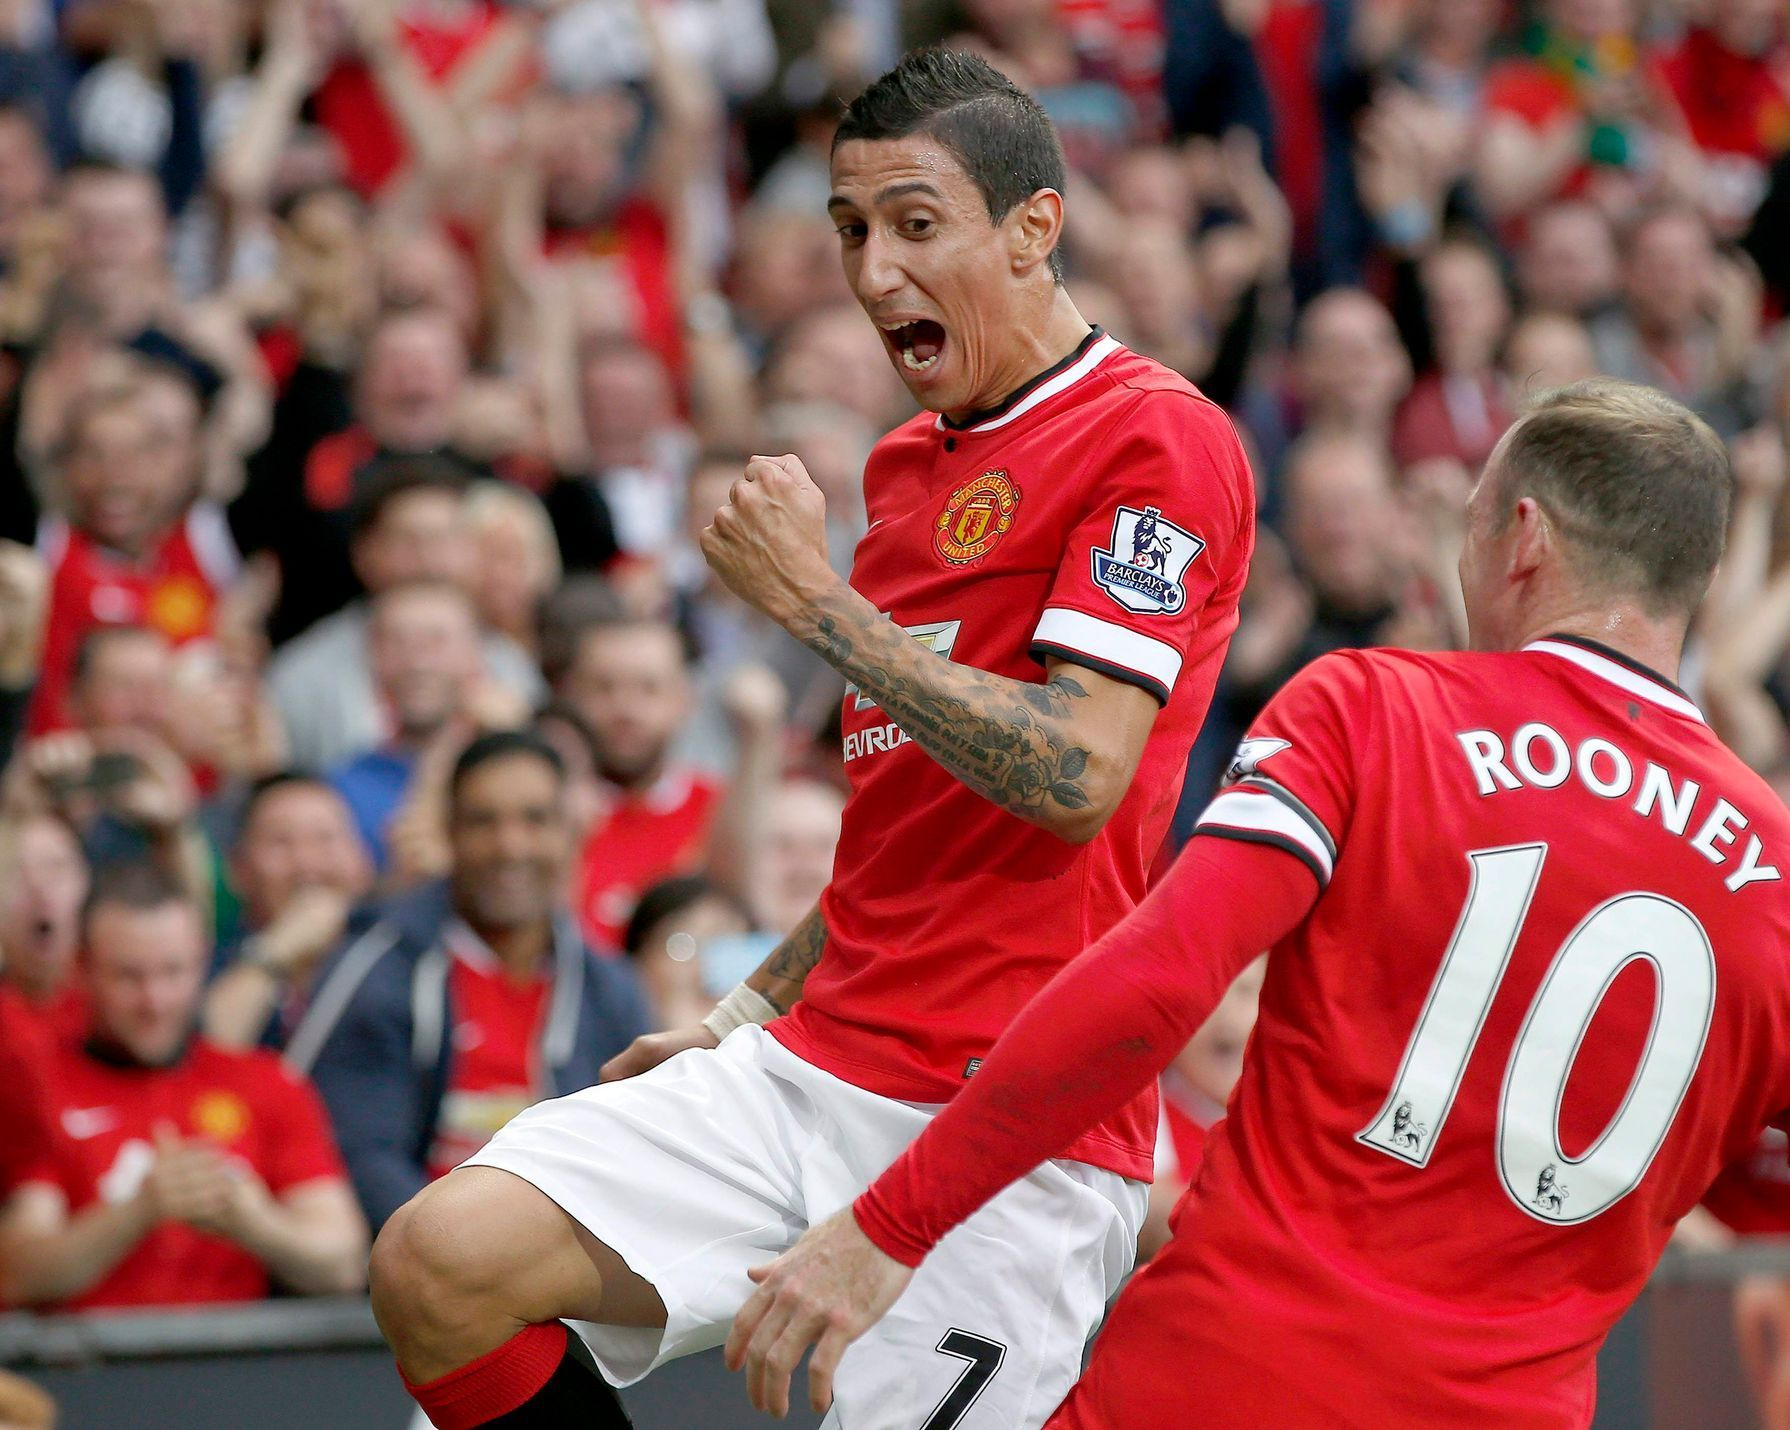 Manchester United's Di Maria celebrates with teammate Rooney after scoring a goal against Queens Park Rangers during their English Premier League soccer match at Old Trafford in Manchester